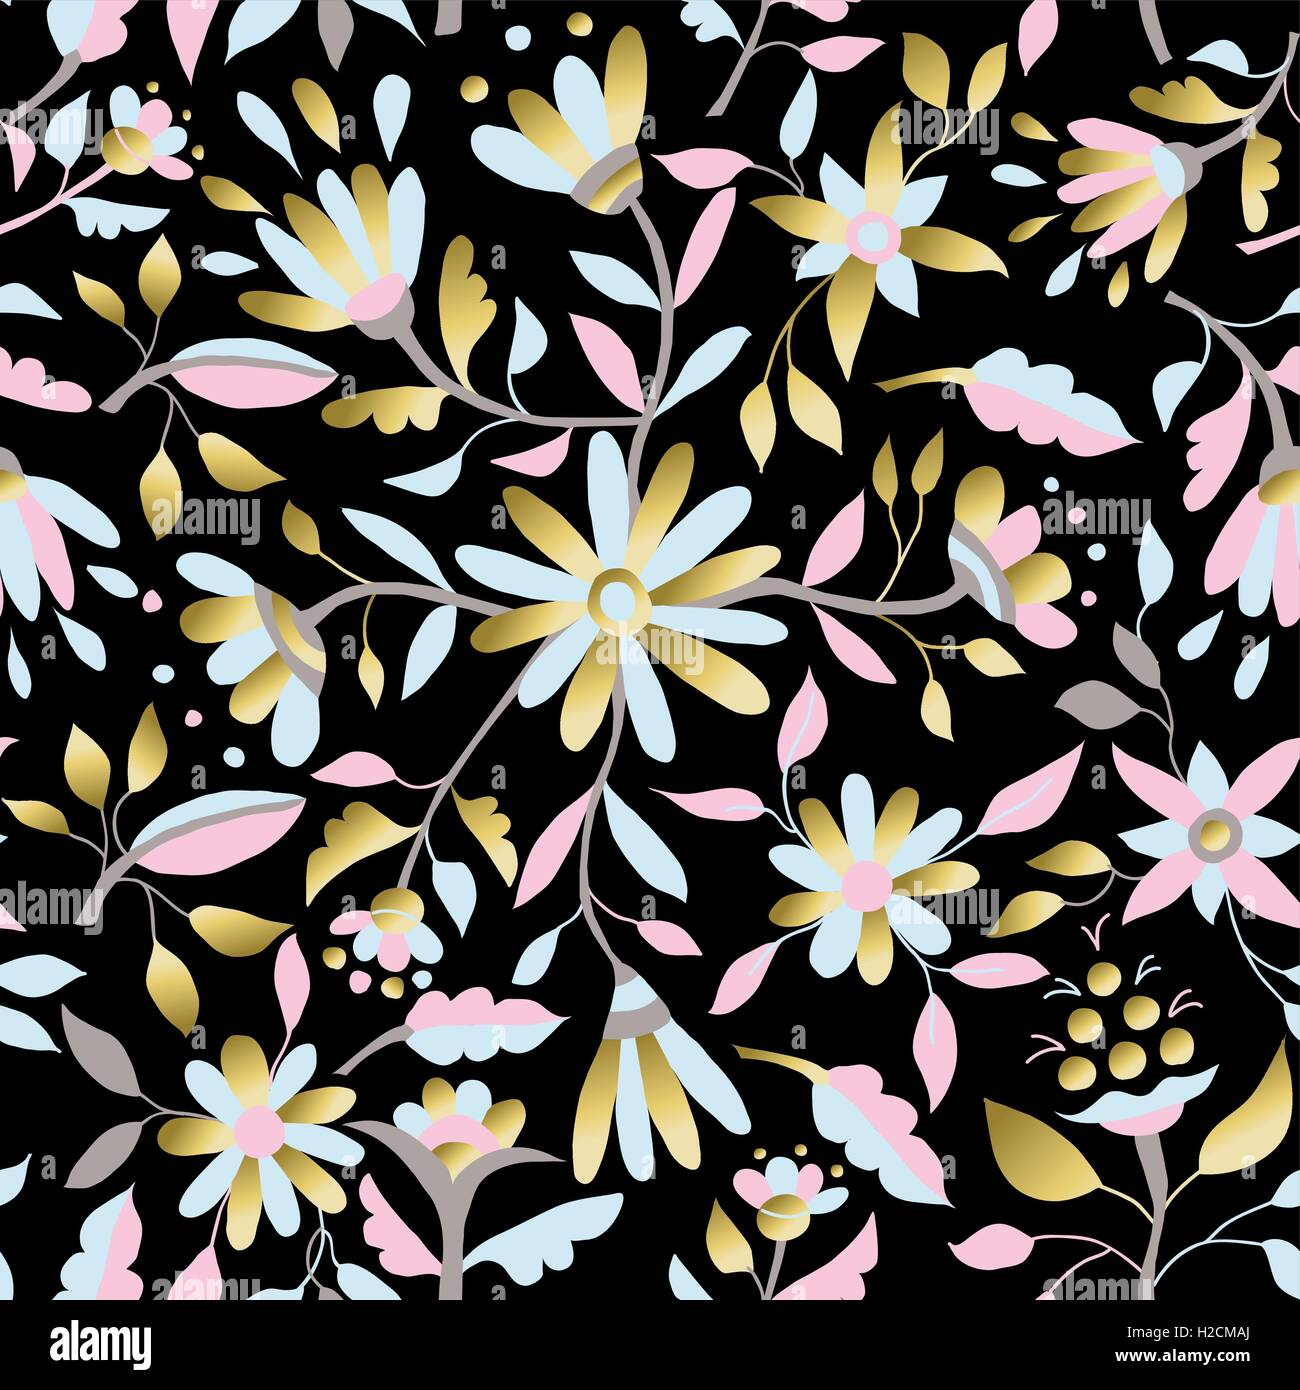 Gerbera daisy stock vector images alamy gold floral spring seamless pattern with daisy flowers leaves and luxury illustration designs eps10 izmirmasajfo